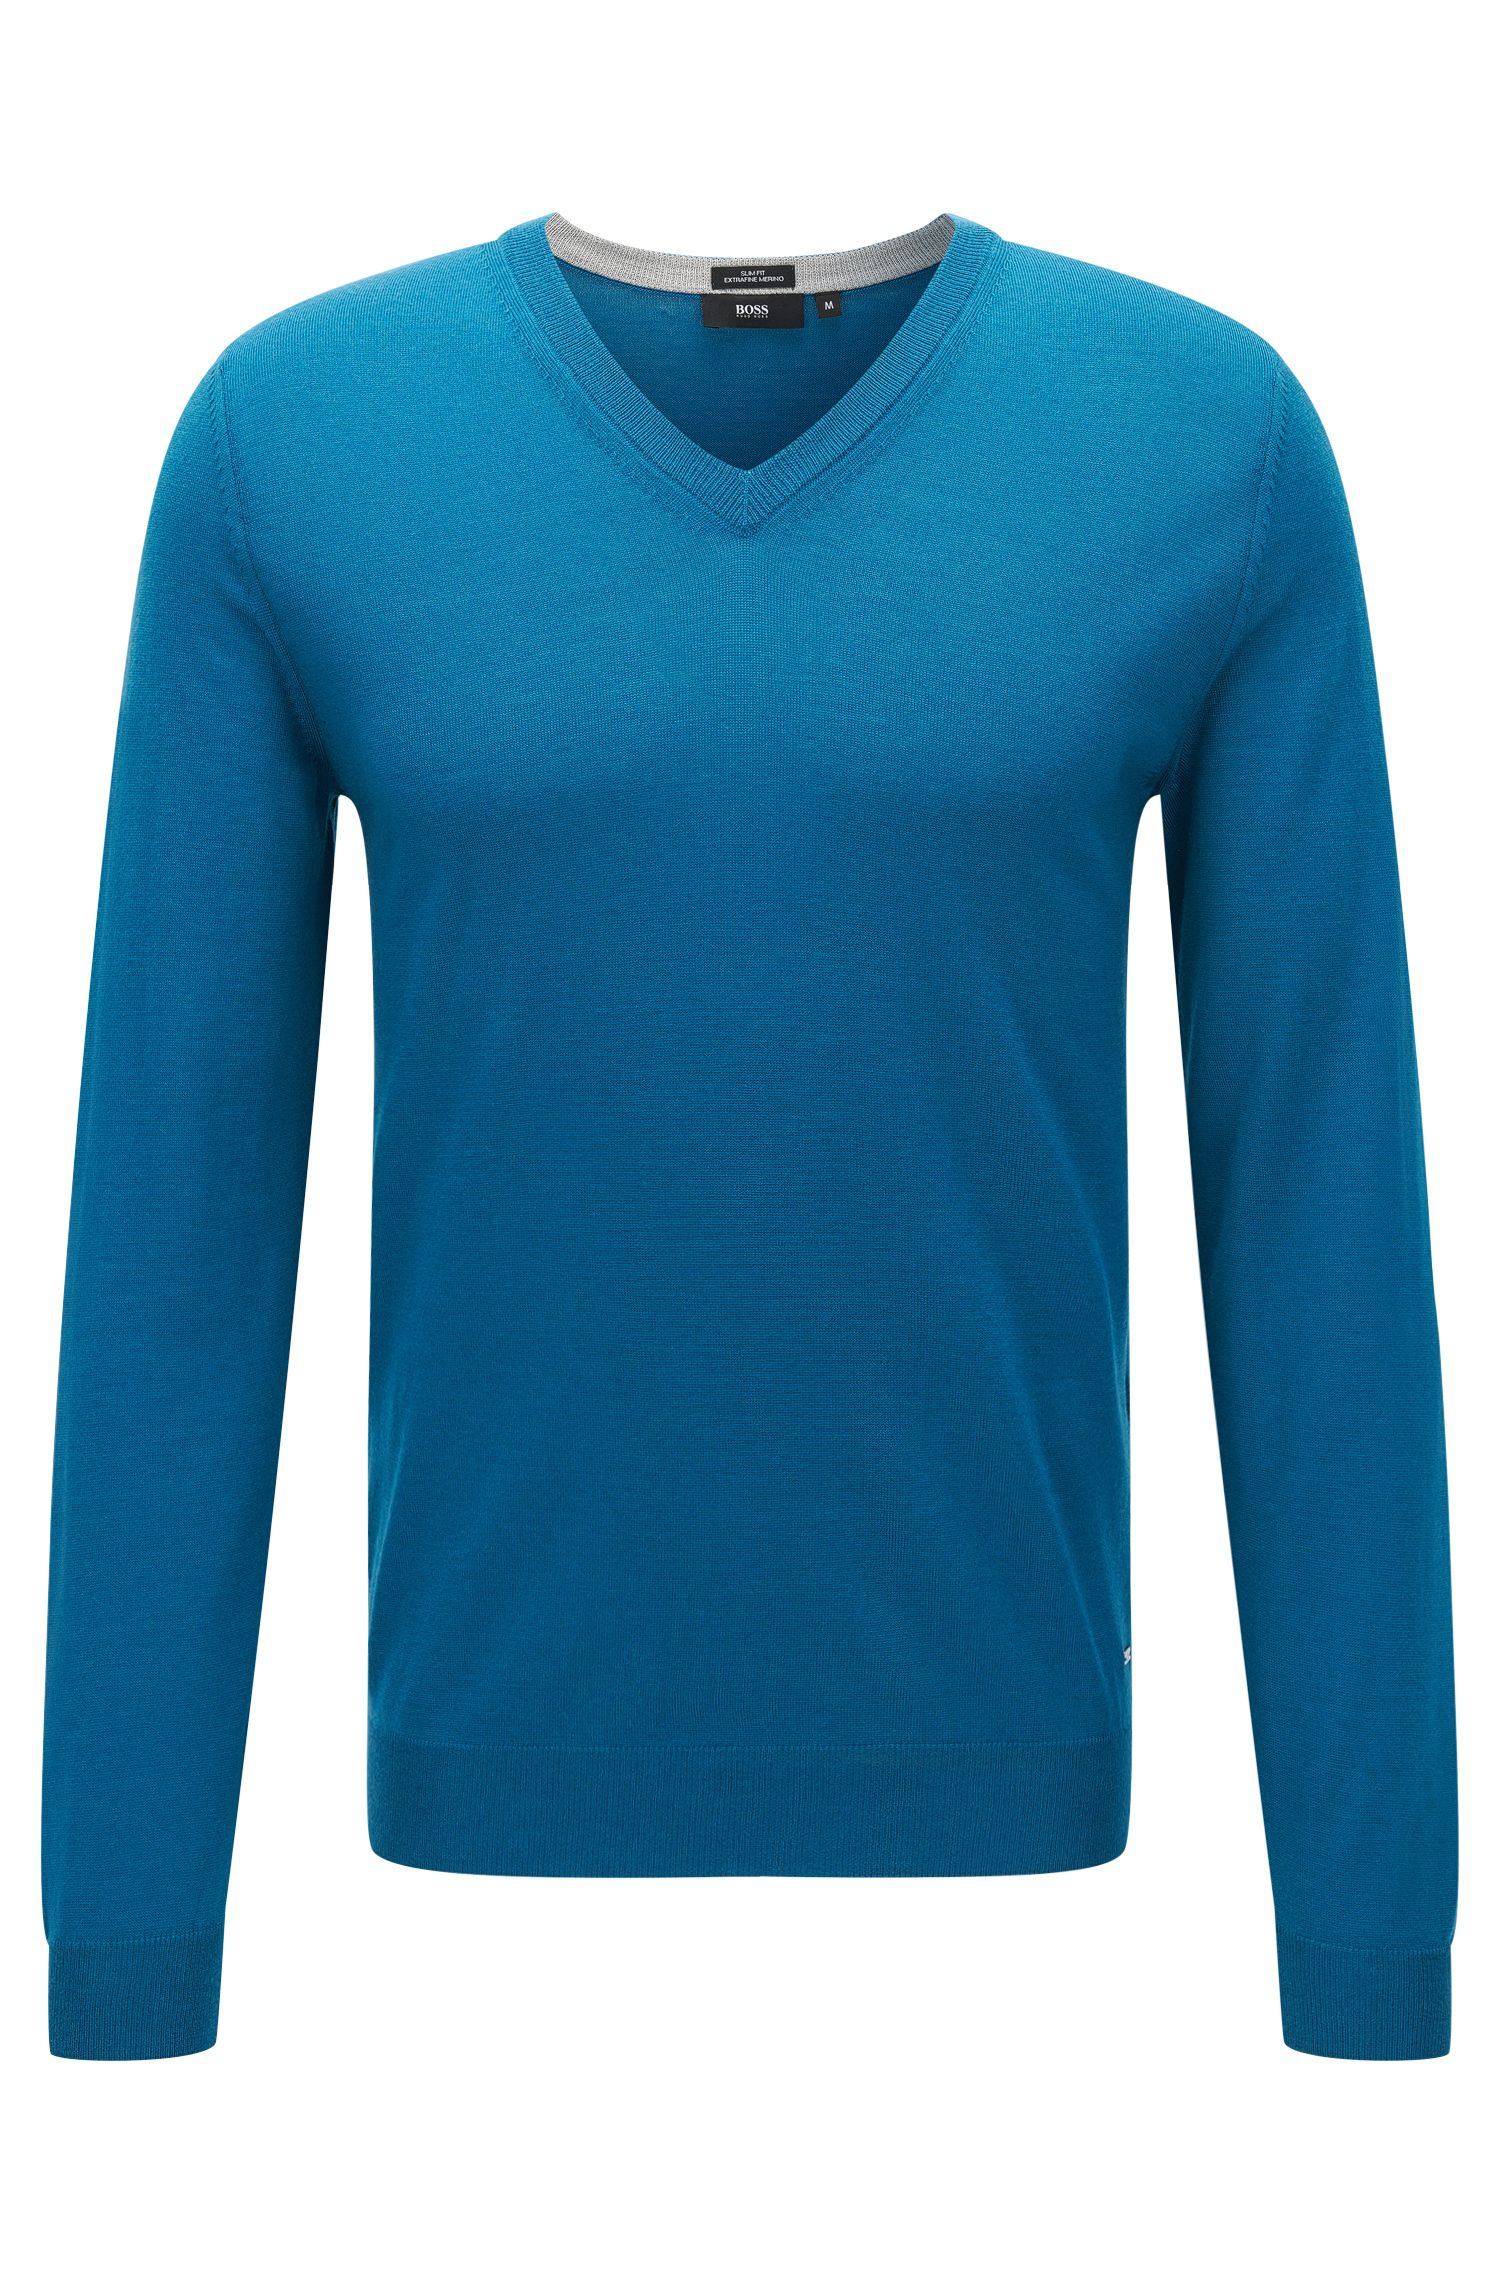 Extra-Fine Merino Wool Sweater, Slim Fit | Melba M